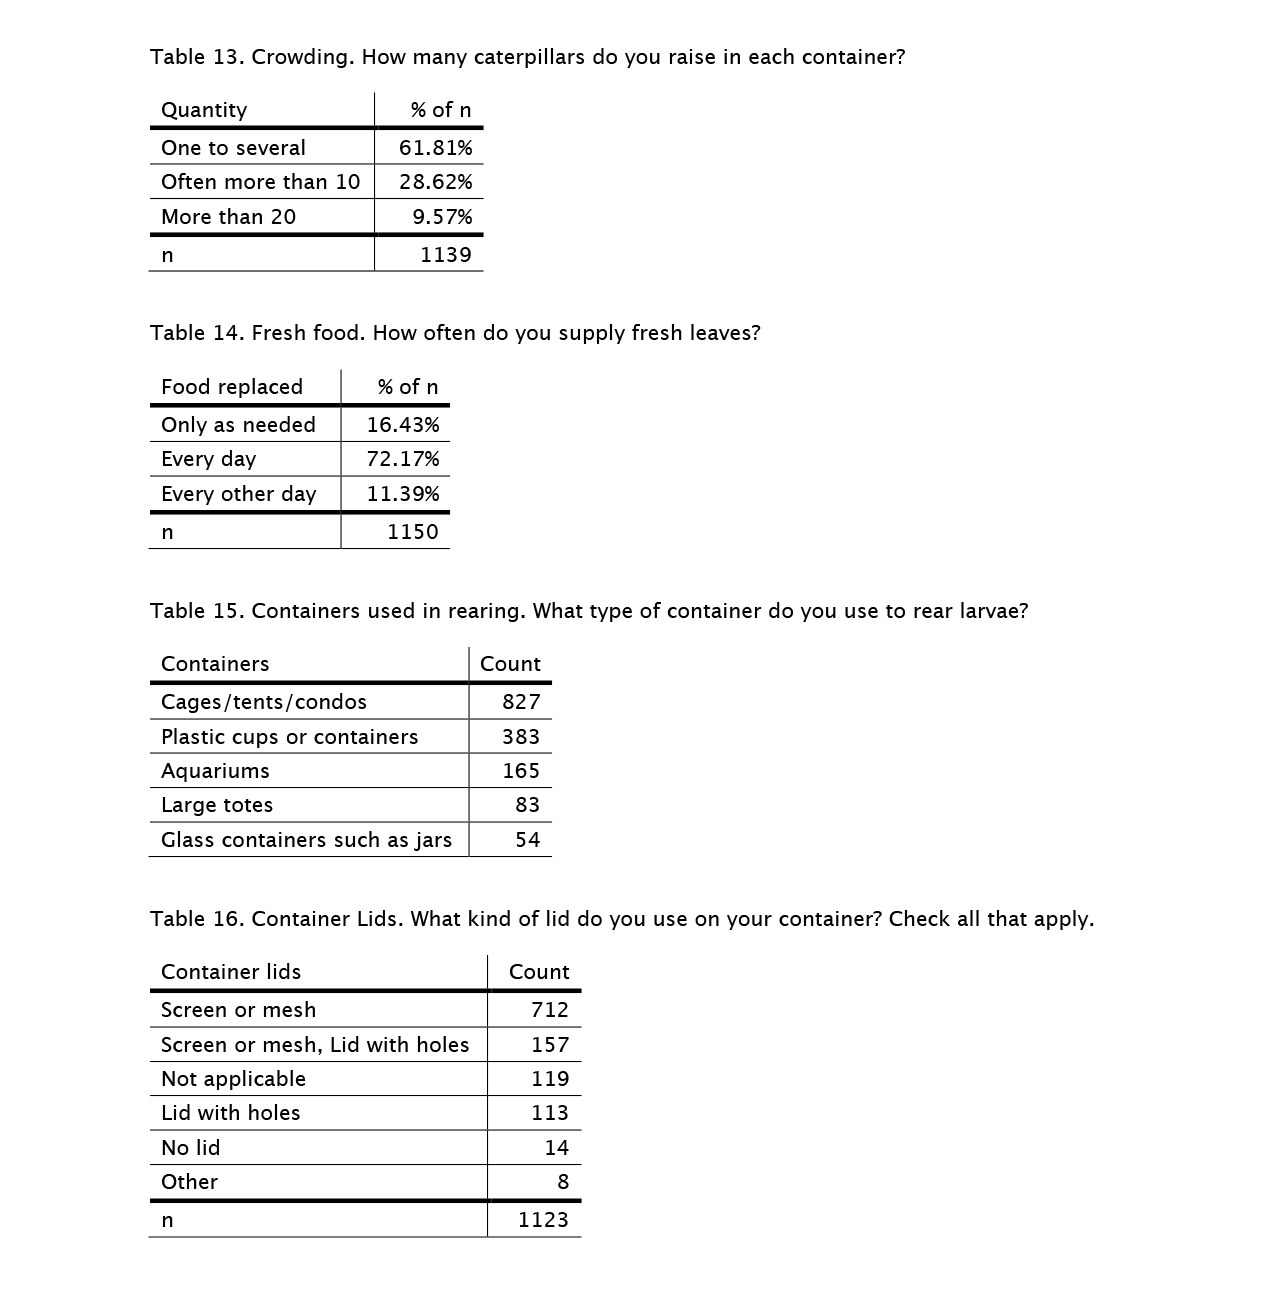 rearing-survey-tables-13-16